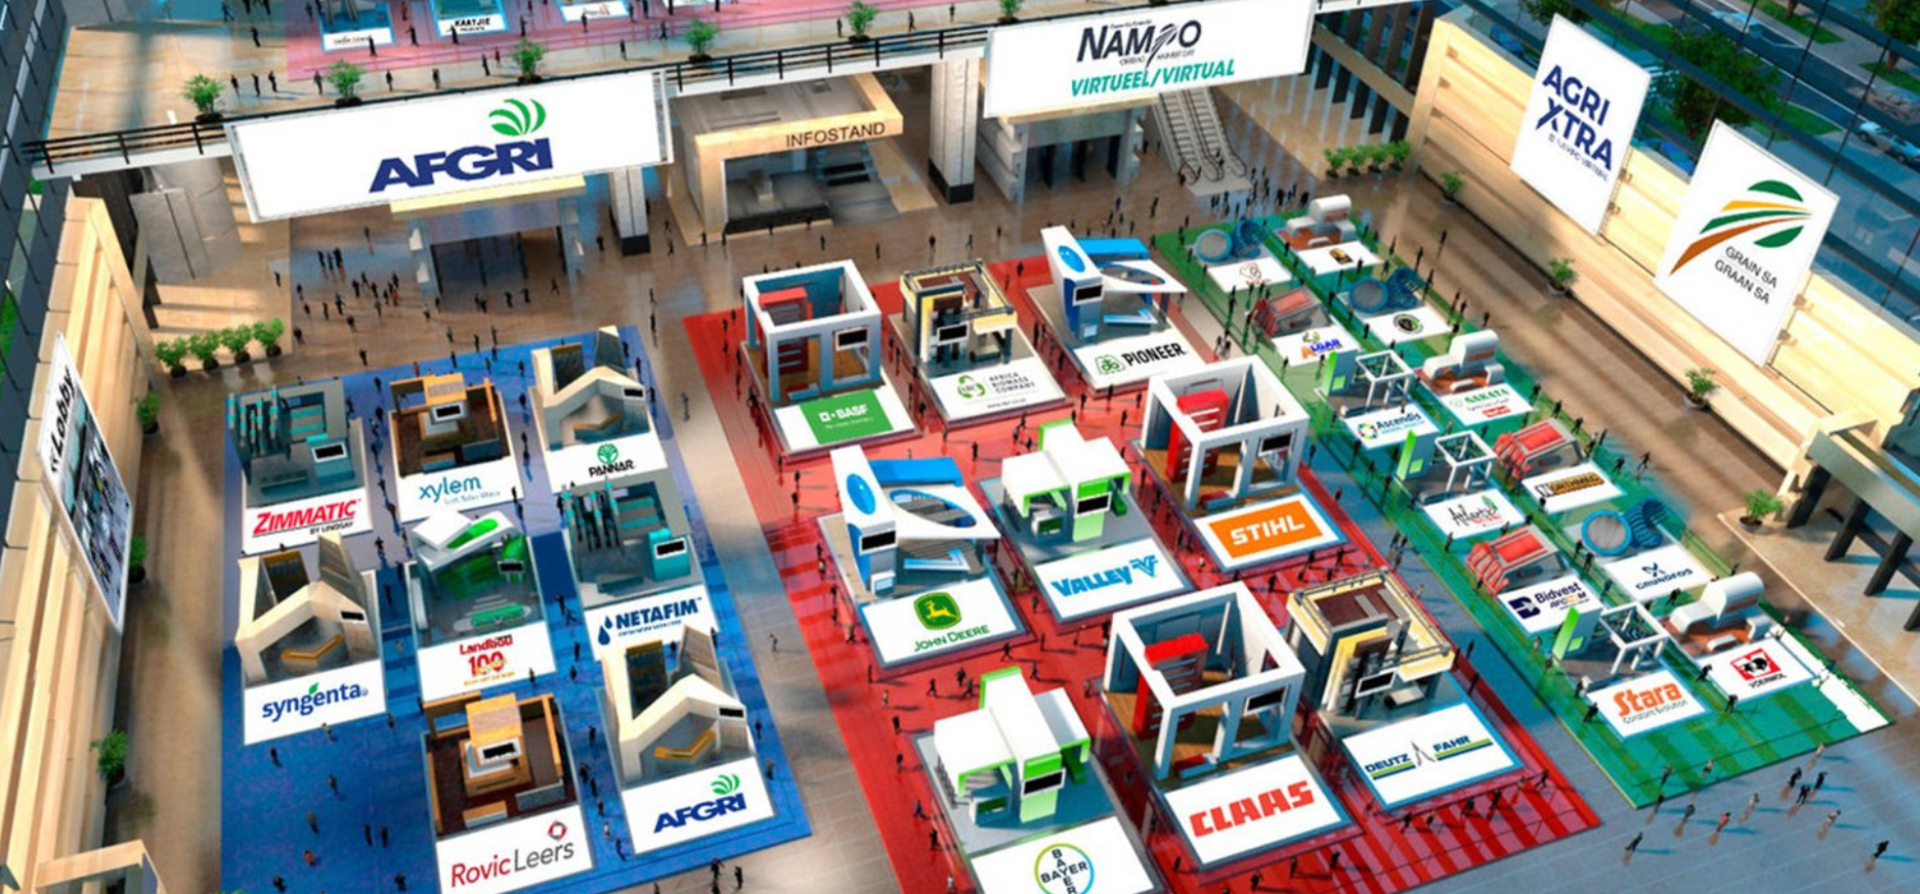 nampo-virtual-expo